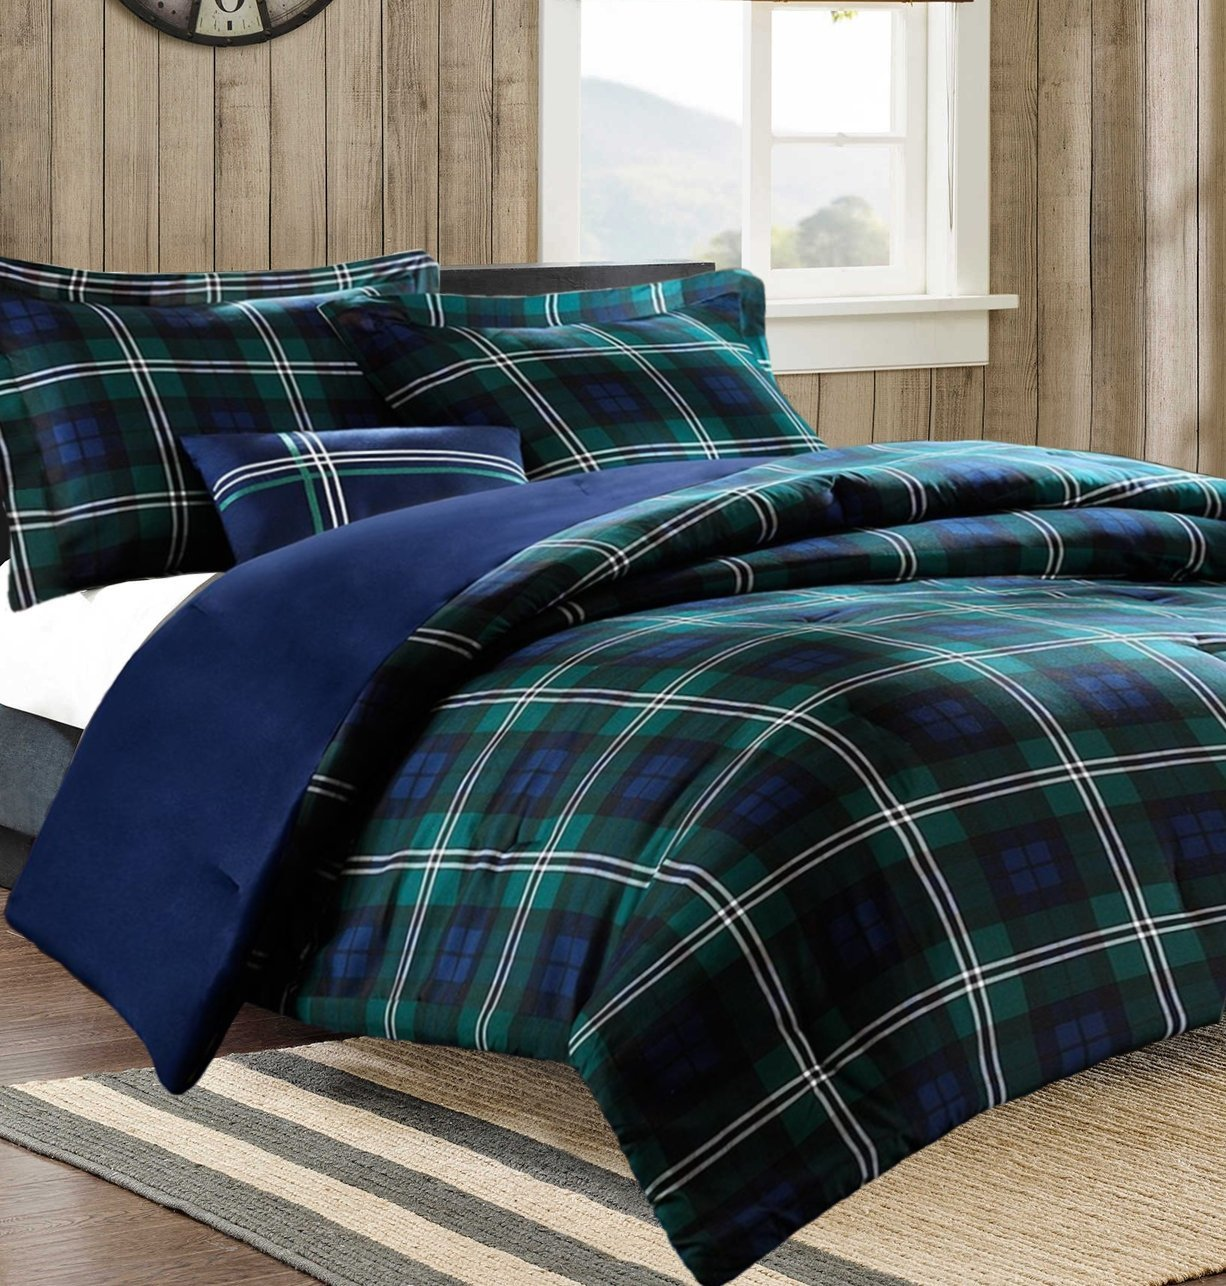 decoration gold comforter red tartan covers king bedding inspired cover bedroom set tog sets queen bedspread plaid green duvet